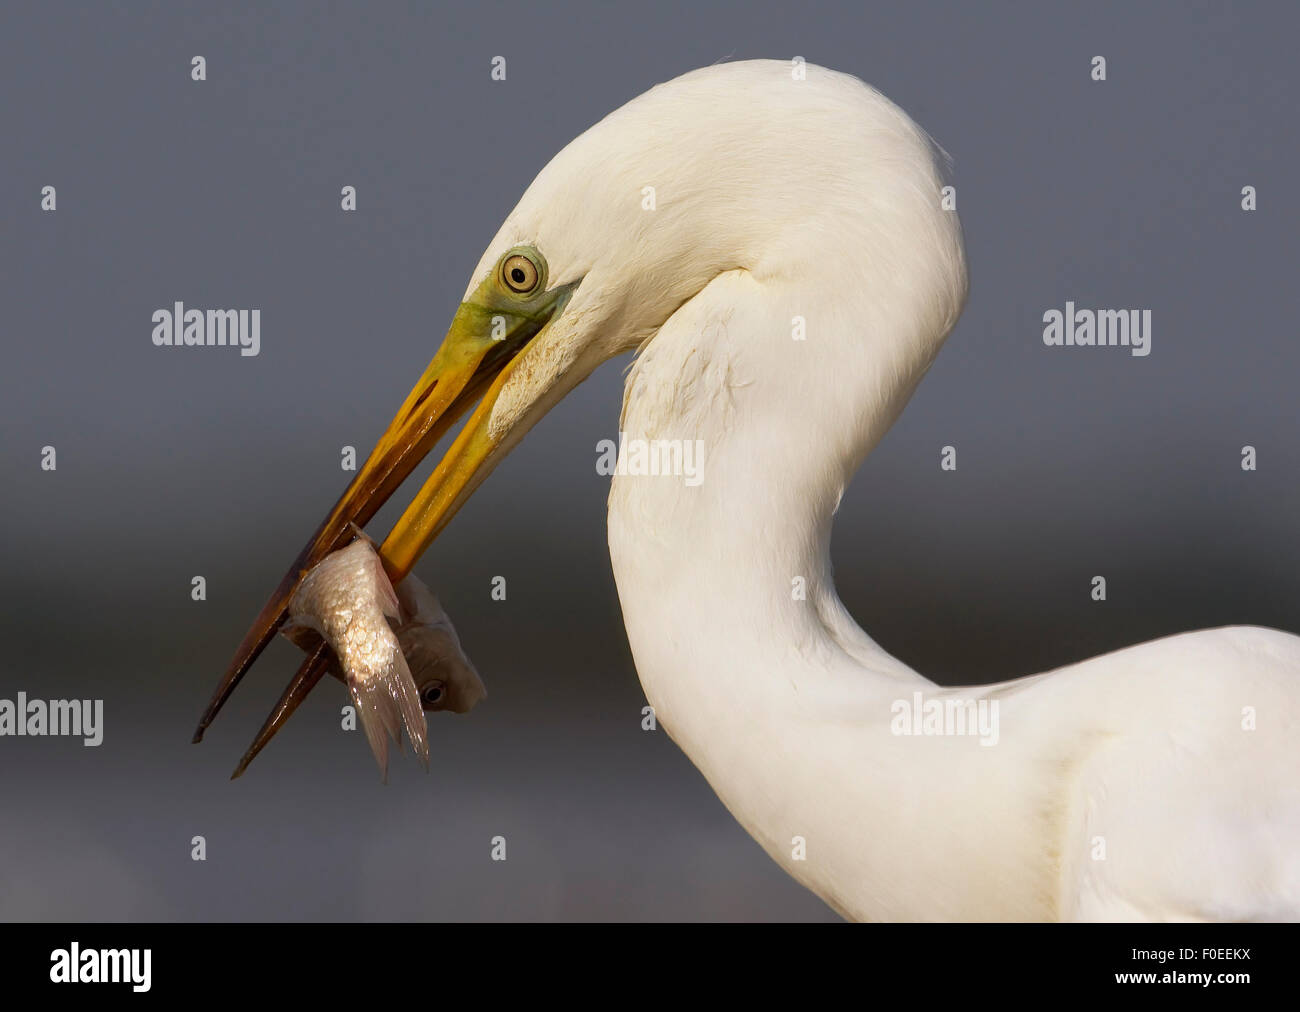 Great Egret (Ardea alba) with fish in beak, Pusztaszer, Hungary, May 2008 - Stock Image